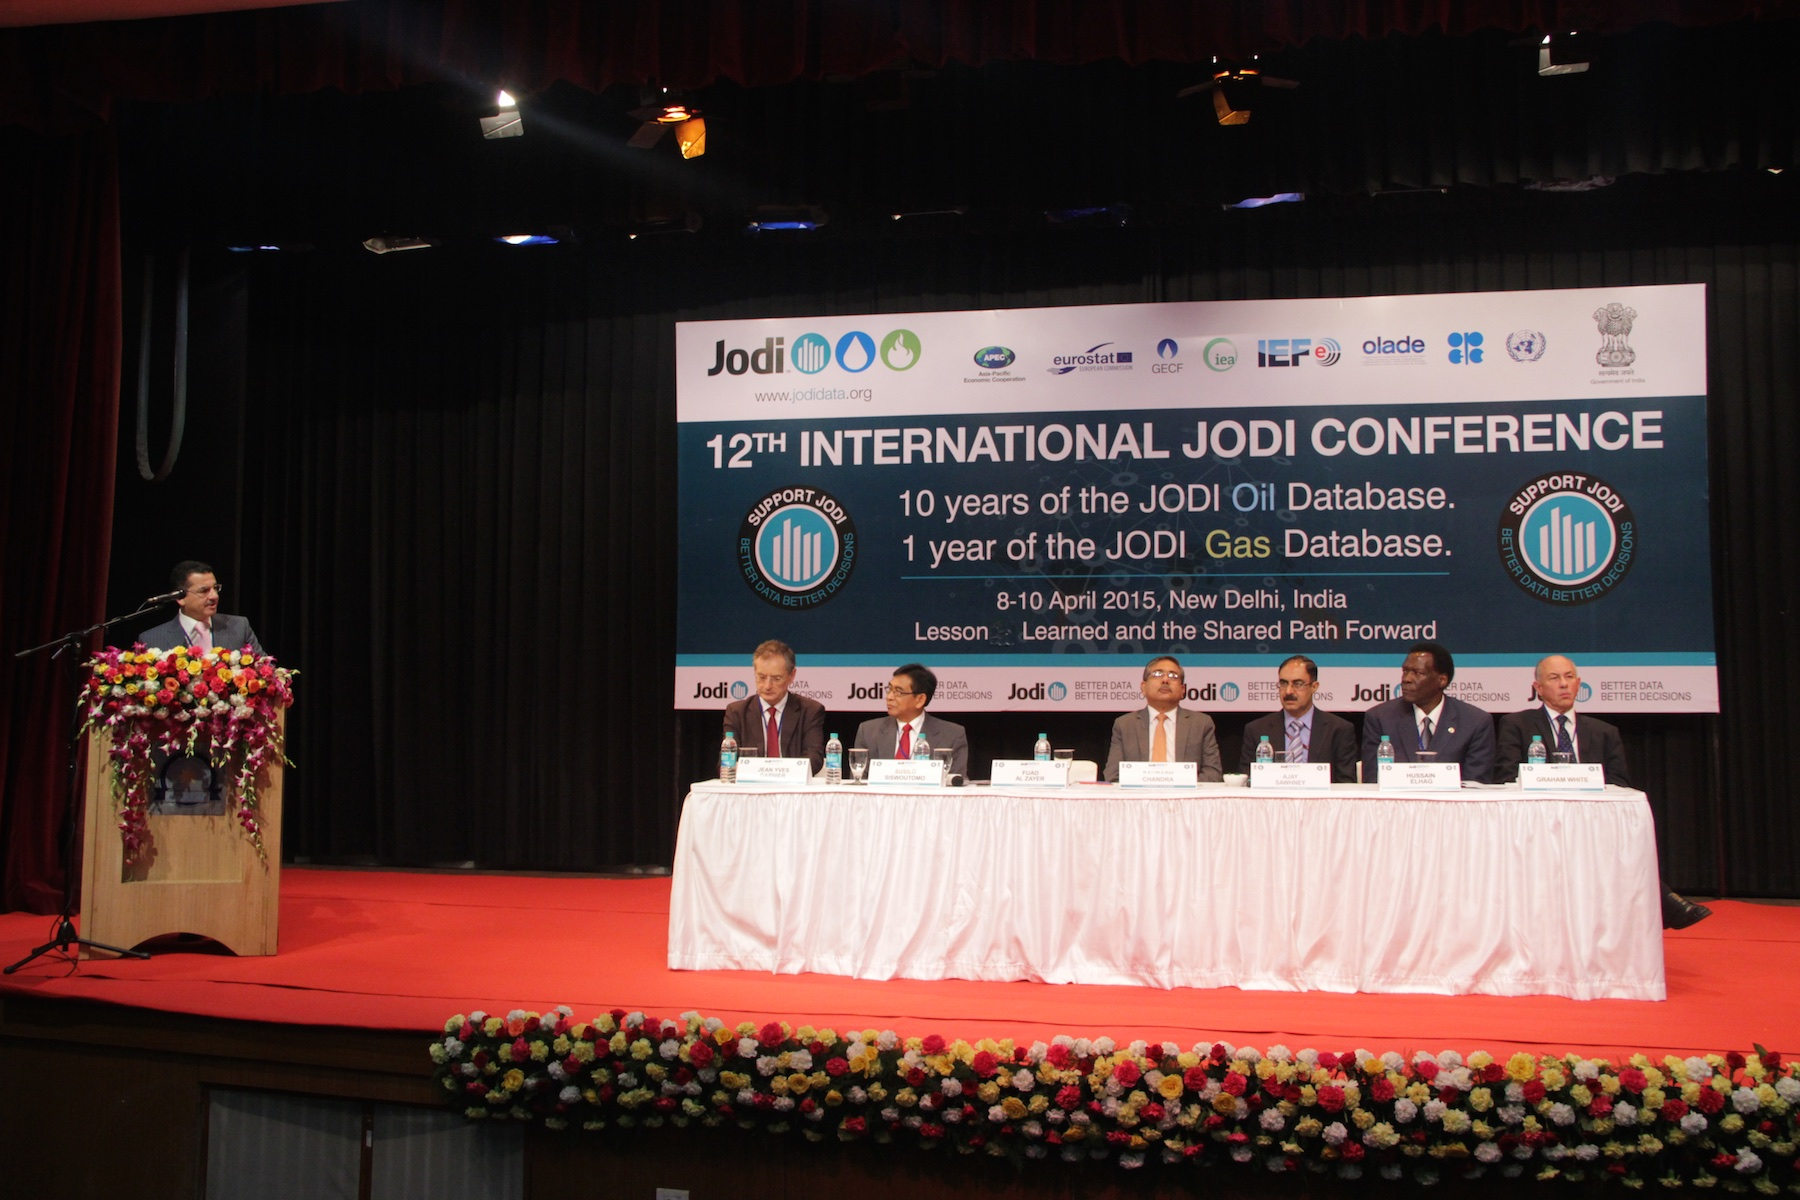 12thInternationalJODIConference  (5)  04 08 2015